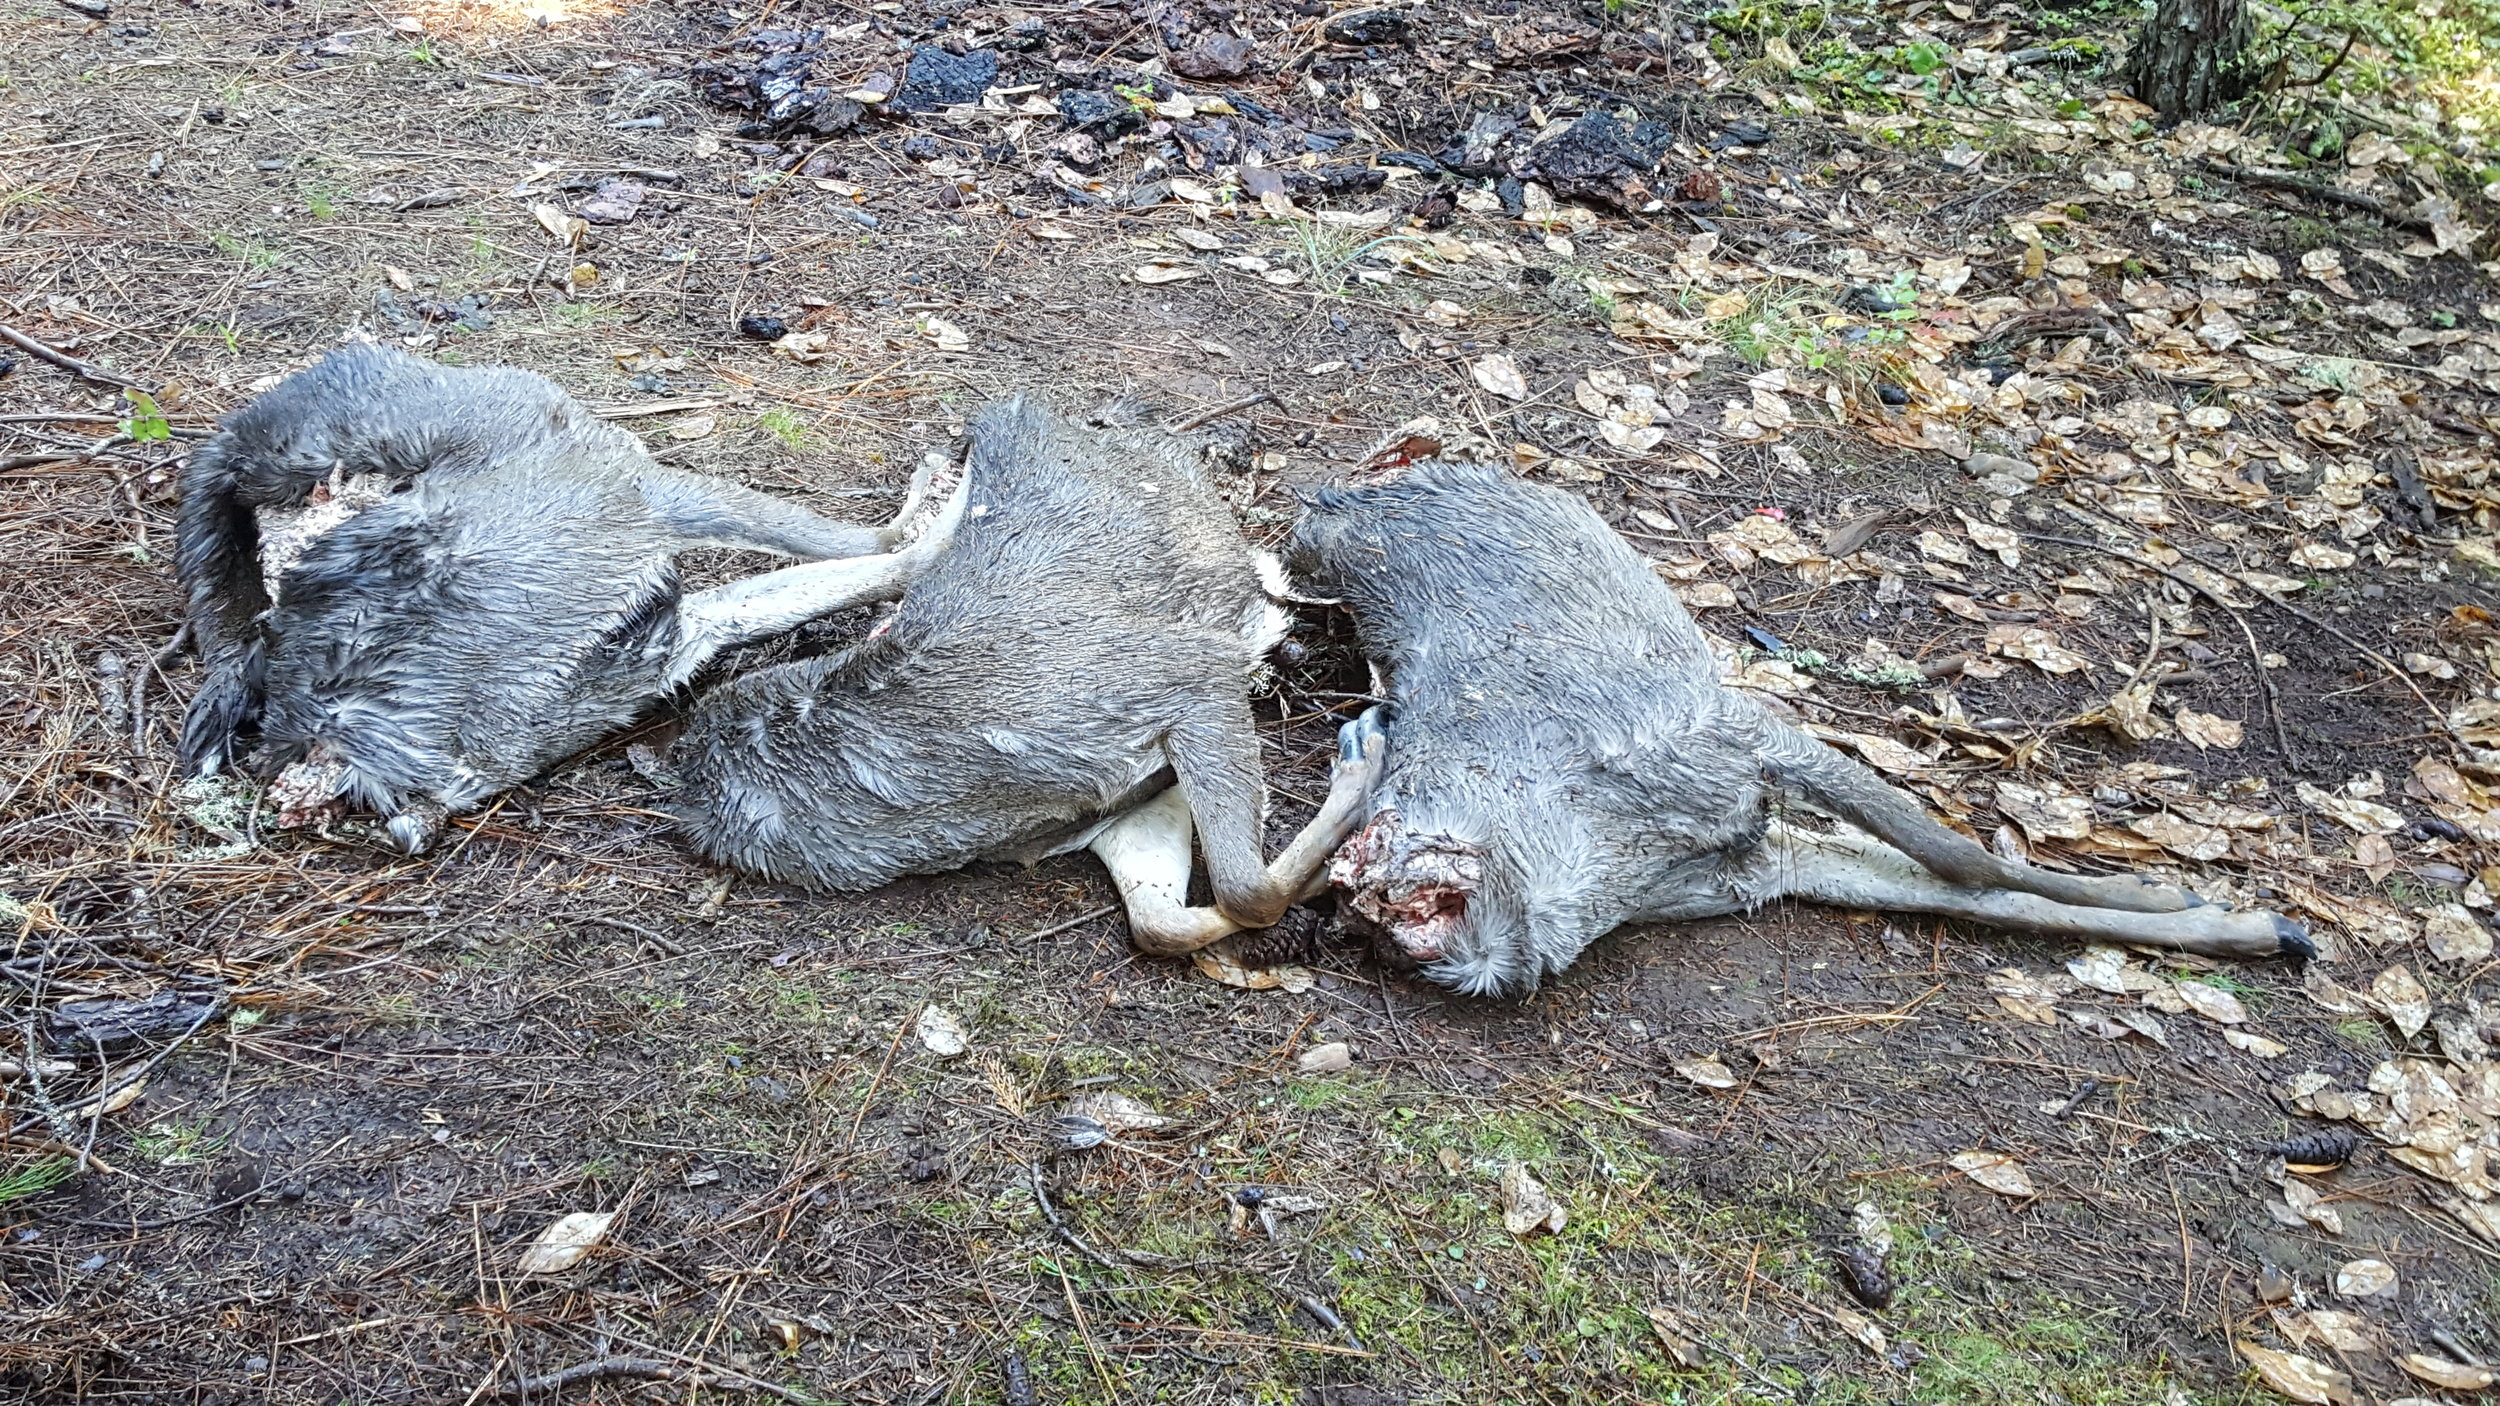 Oregon State Police seeking public assistance in the unlawful killing/waste of three black tail deer outside of Butte Falls, Ore.